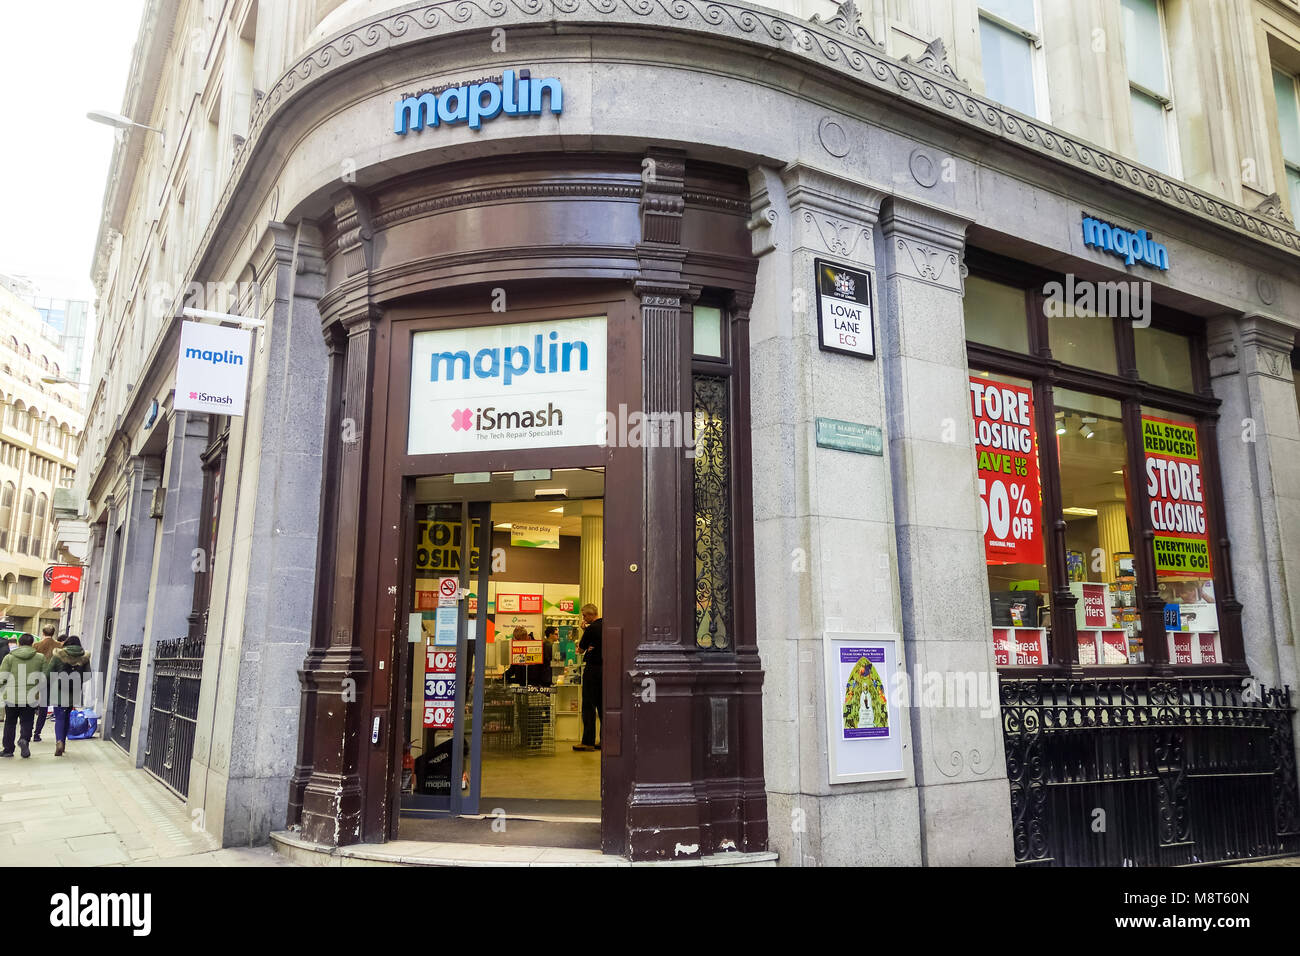 LONDON, UK -16th Mar 2018: Maplin store at their Eastcheap branch in Monument offers heavy discounts to customers - Stock Image